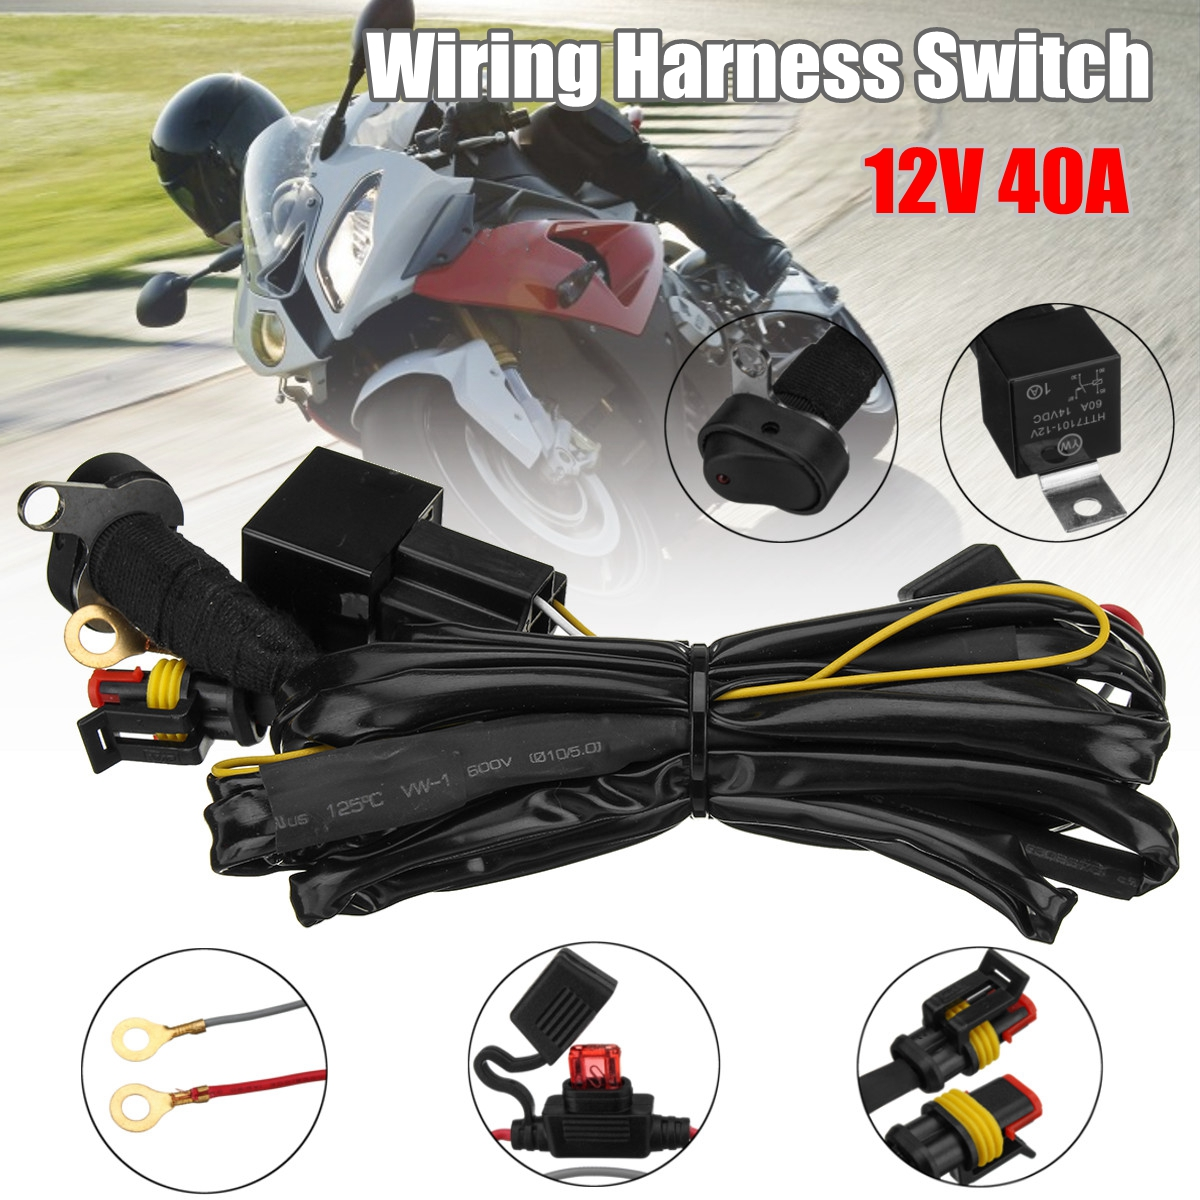 12V 40A LED Fog Lights Wiring Harness Switch On/Off For BMW R1200GS F800GS/ADV